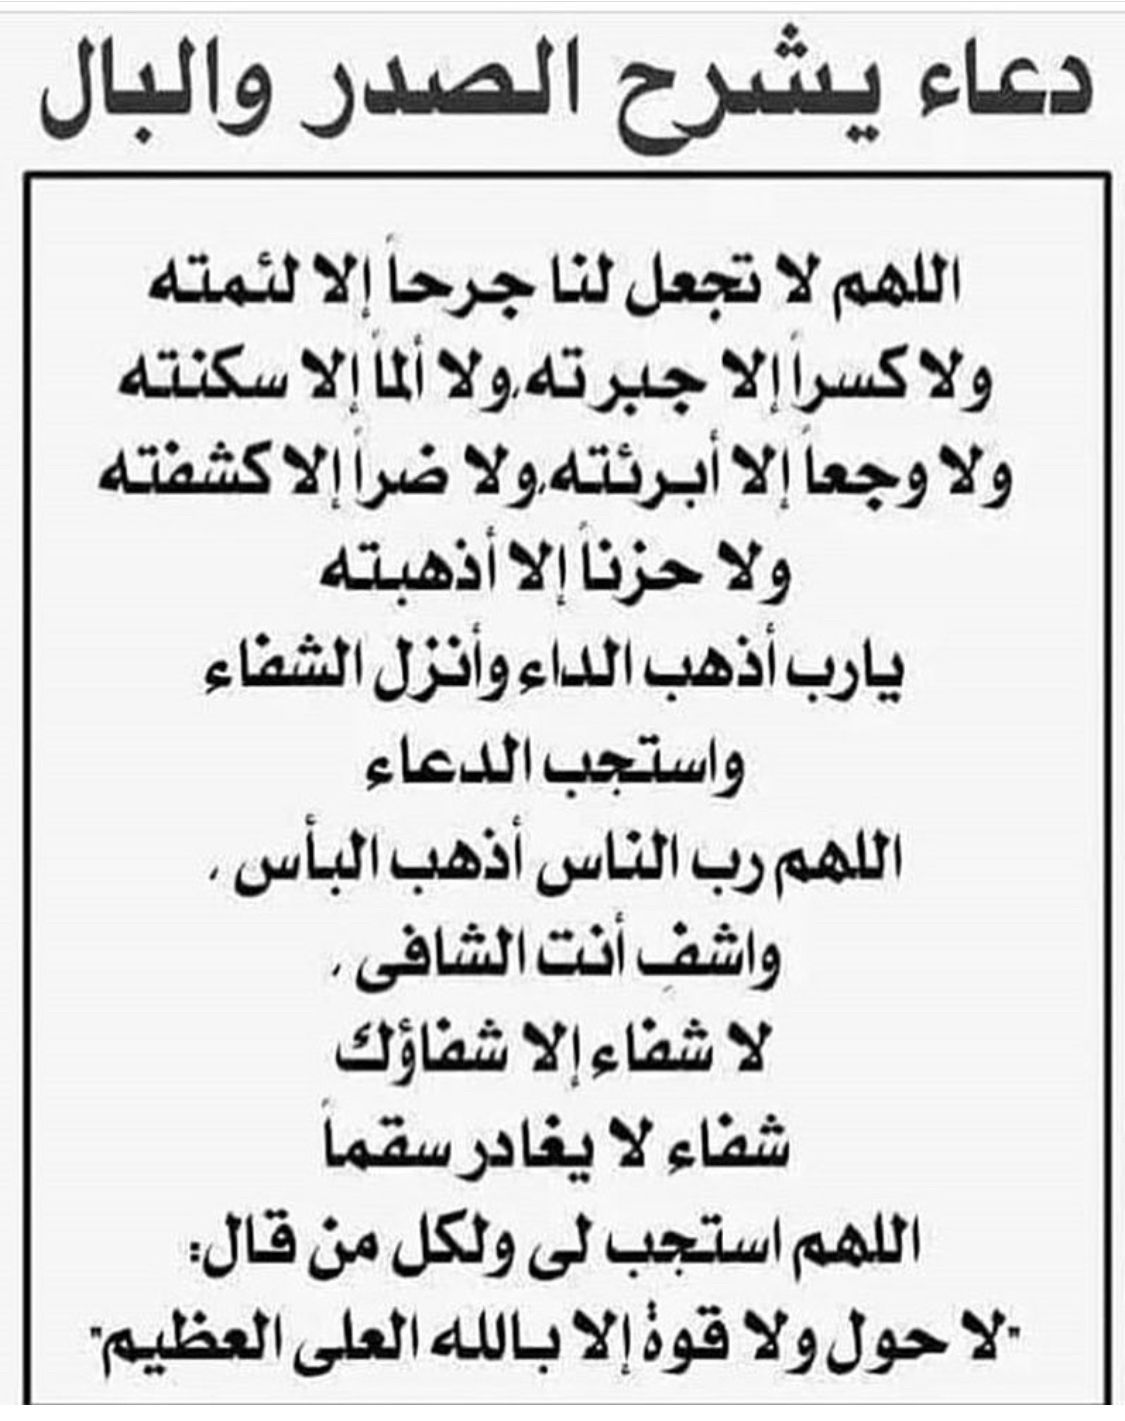 Pin By Marwa Eissa On دعاء Islamic Phrases Islamic Quotes Quotes